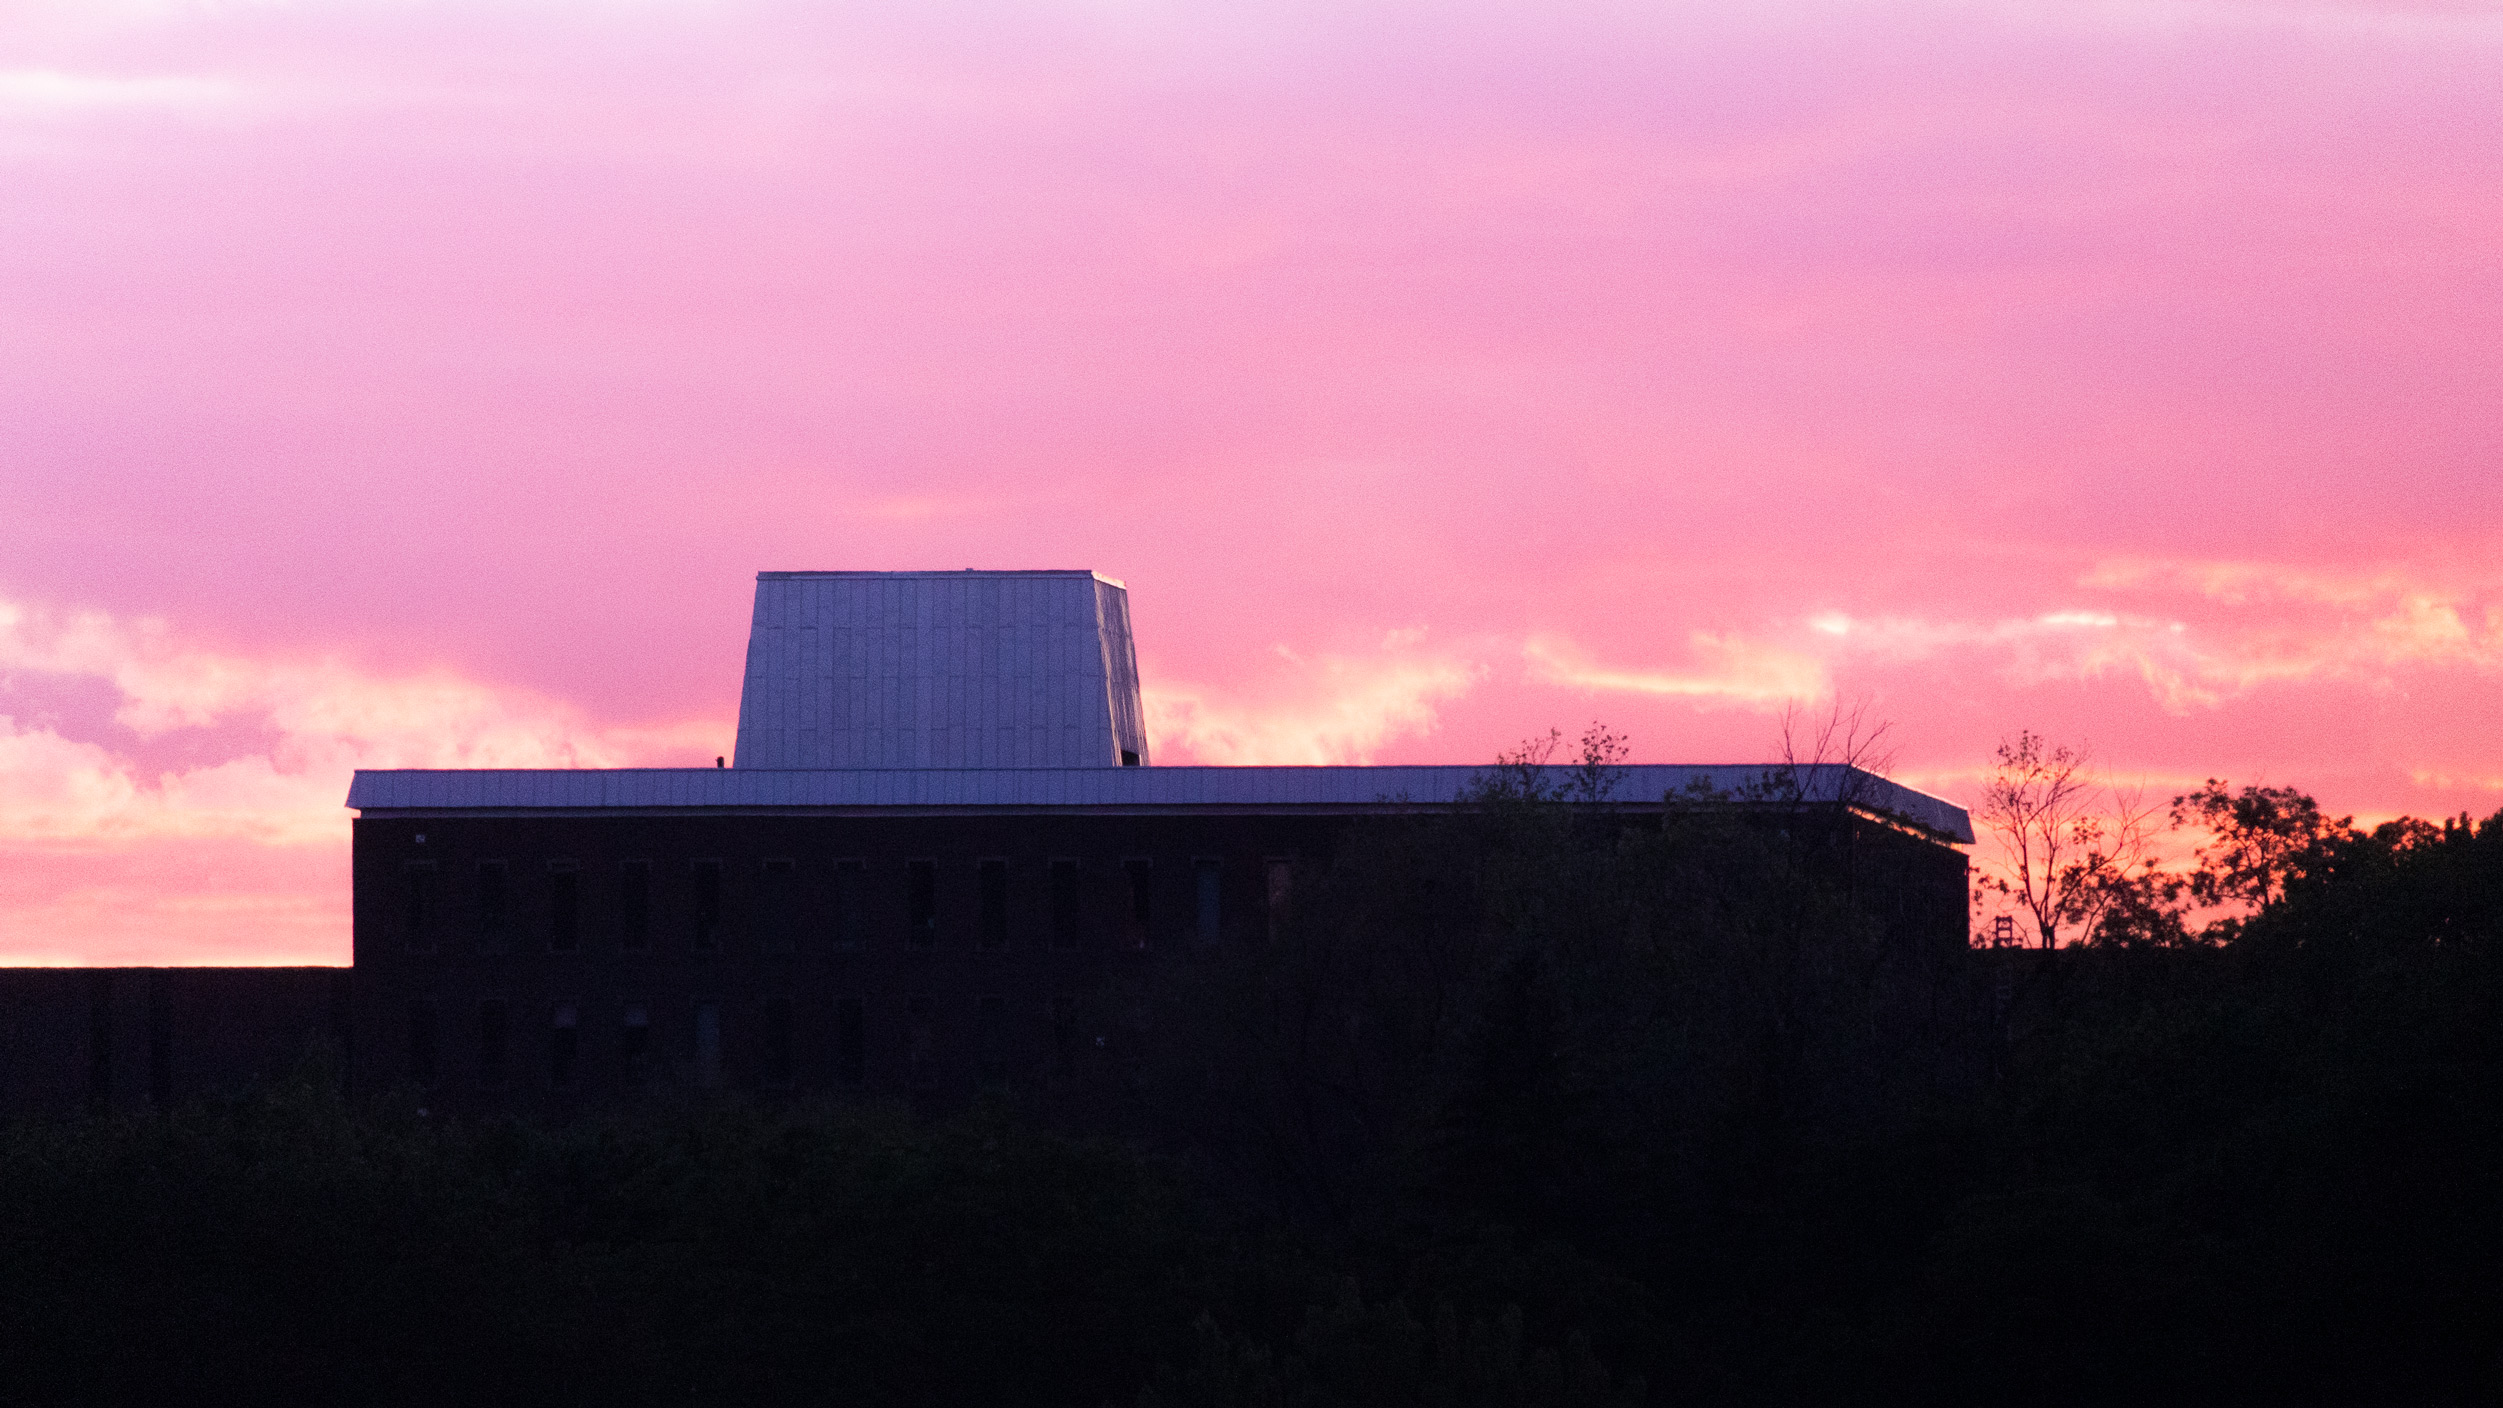 A building backlit with the pink glow of a sunset sky